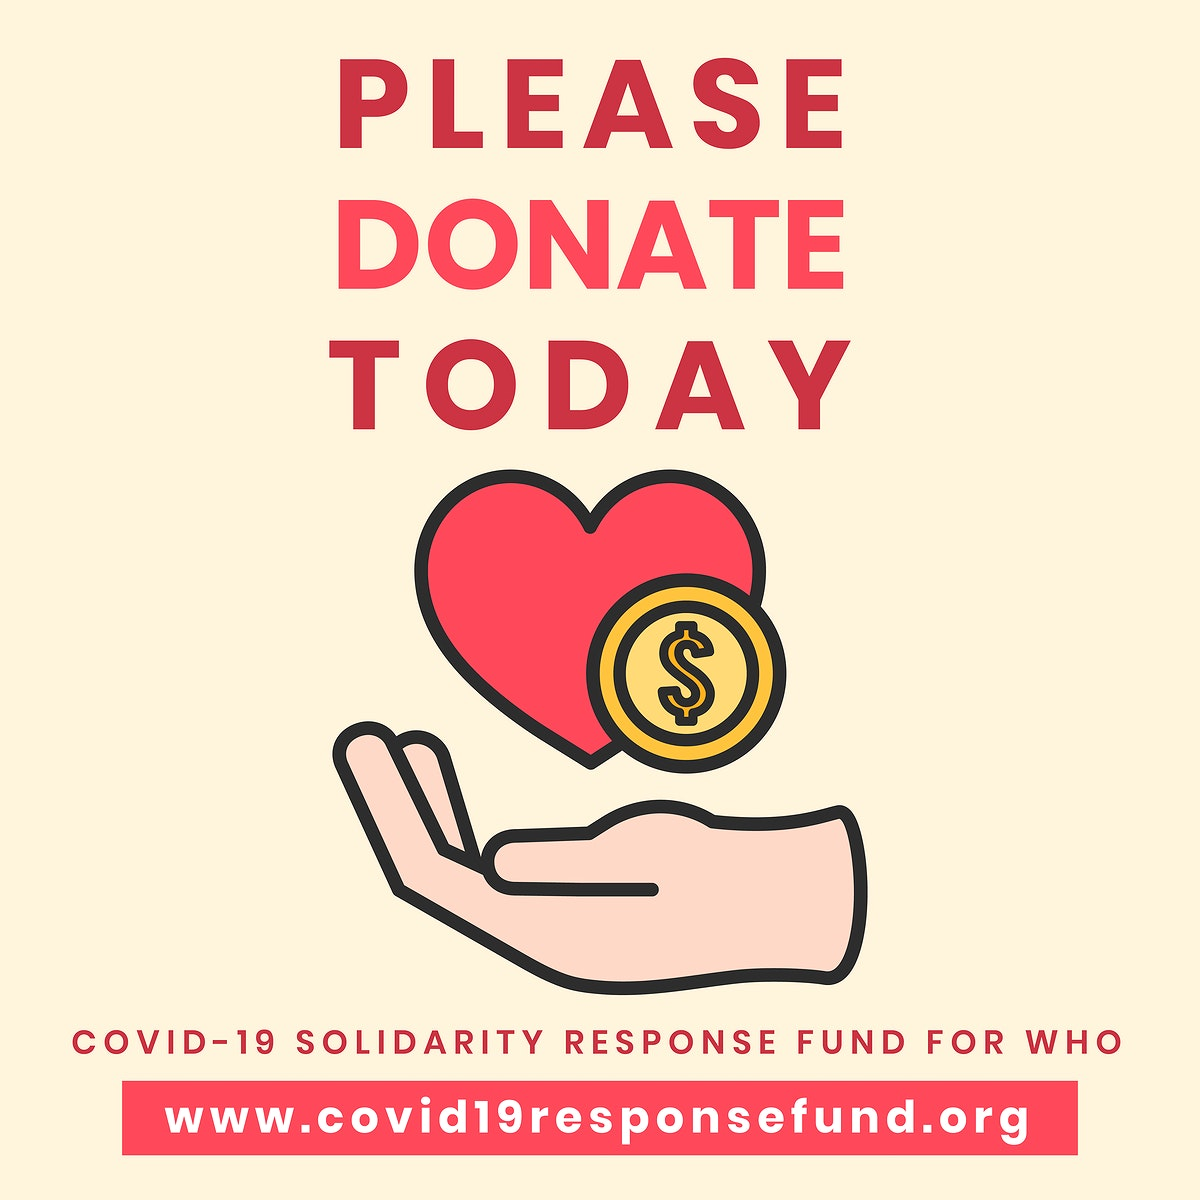 Please donate today due to COVID-19 social template source WHO vector